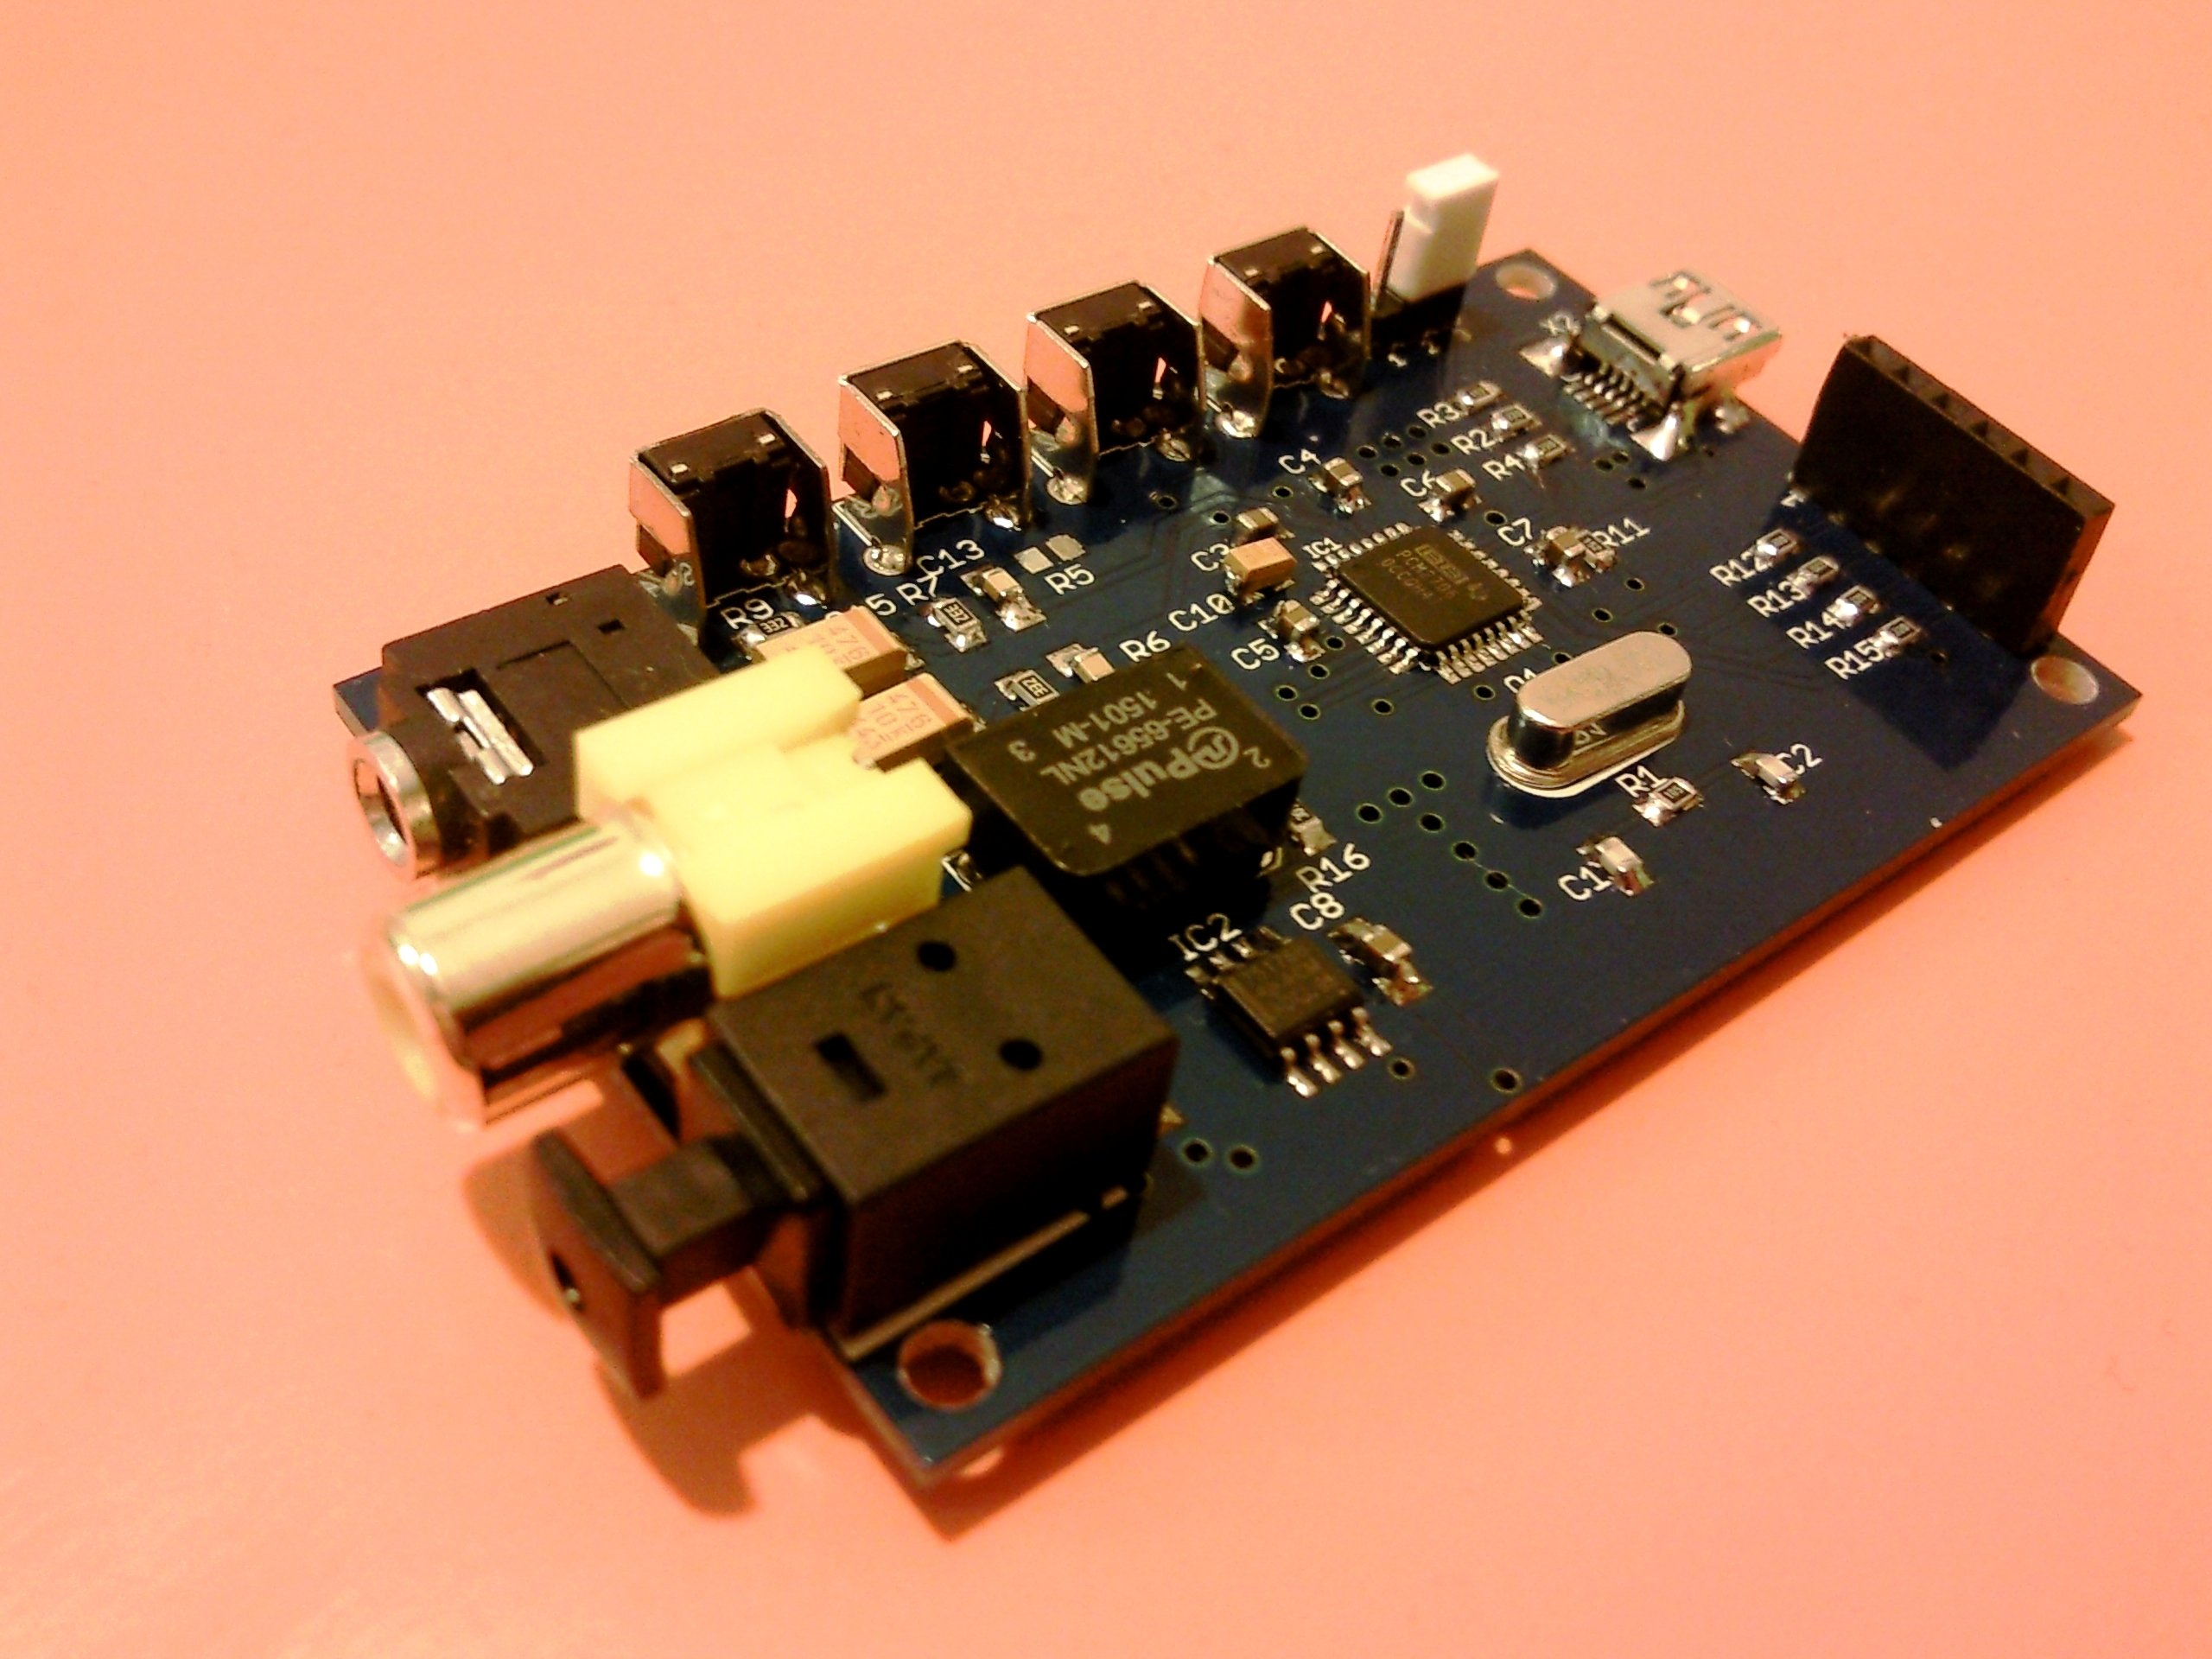 pcm2706 usb dac with s pdif and i2s interface from chichomecho on tindie. Black Bedroom Furniture Sets. Home Design Ideas